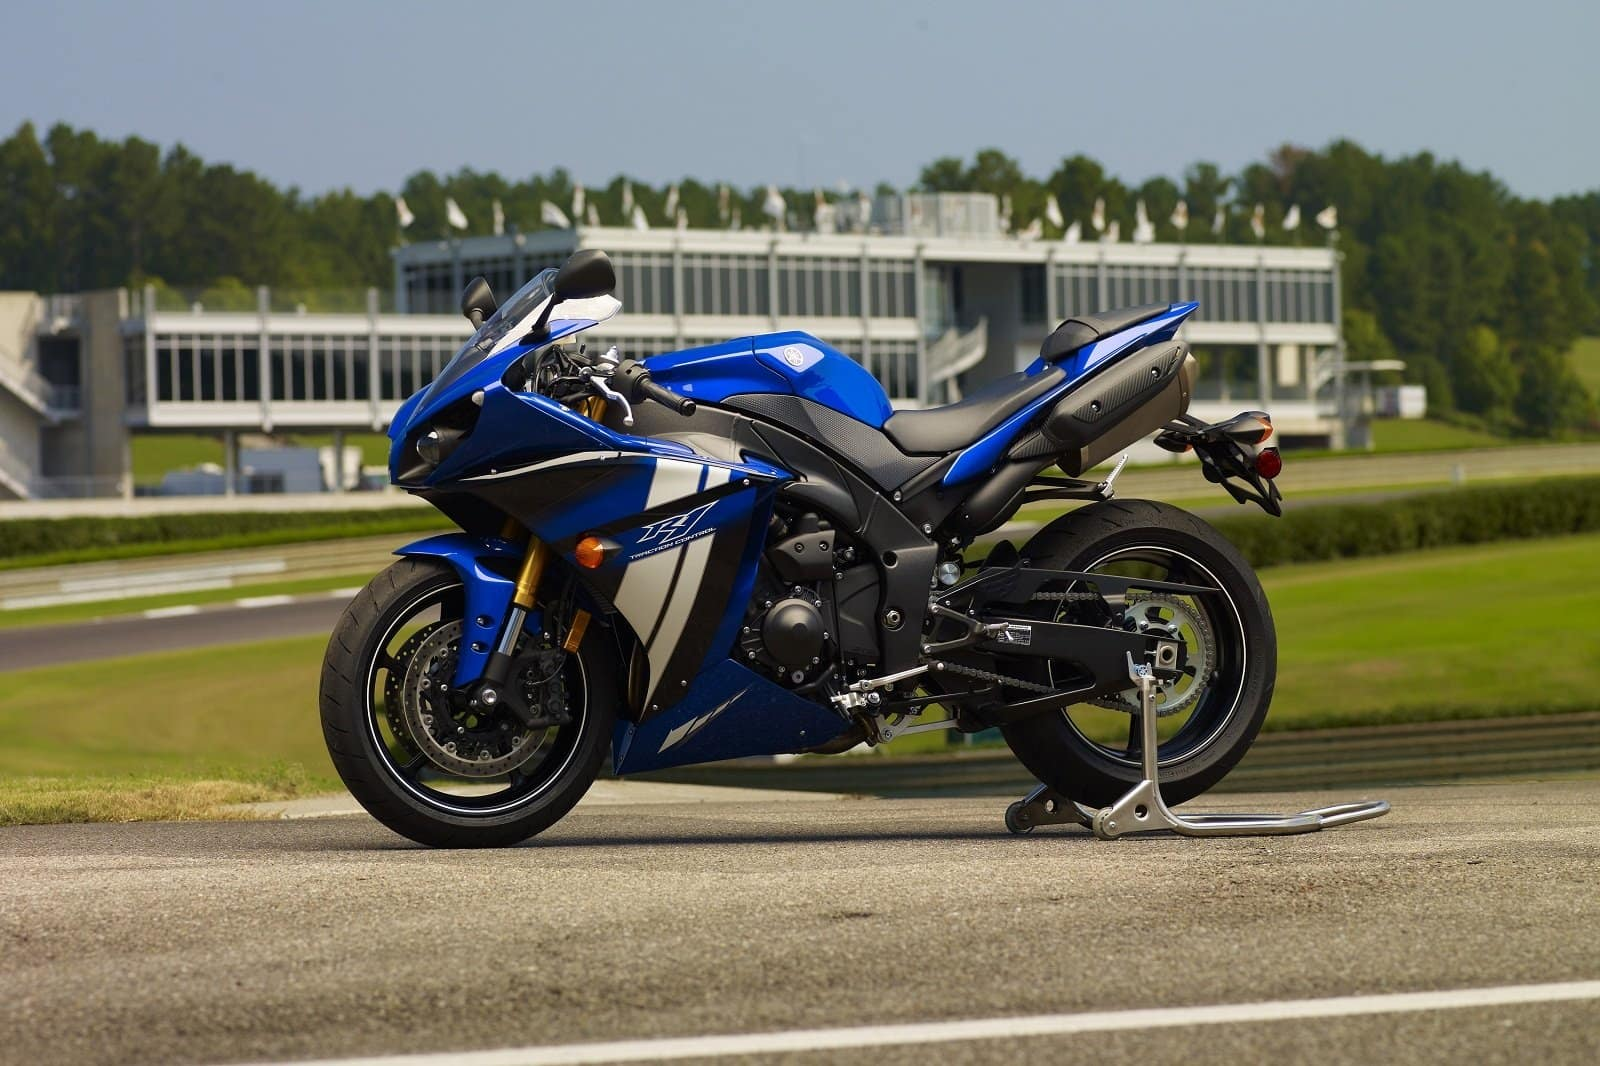 2012 blue yamaha r1 profile pic on track with traction control